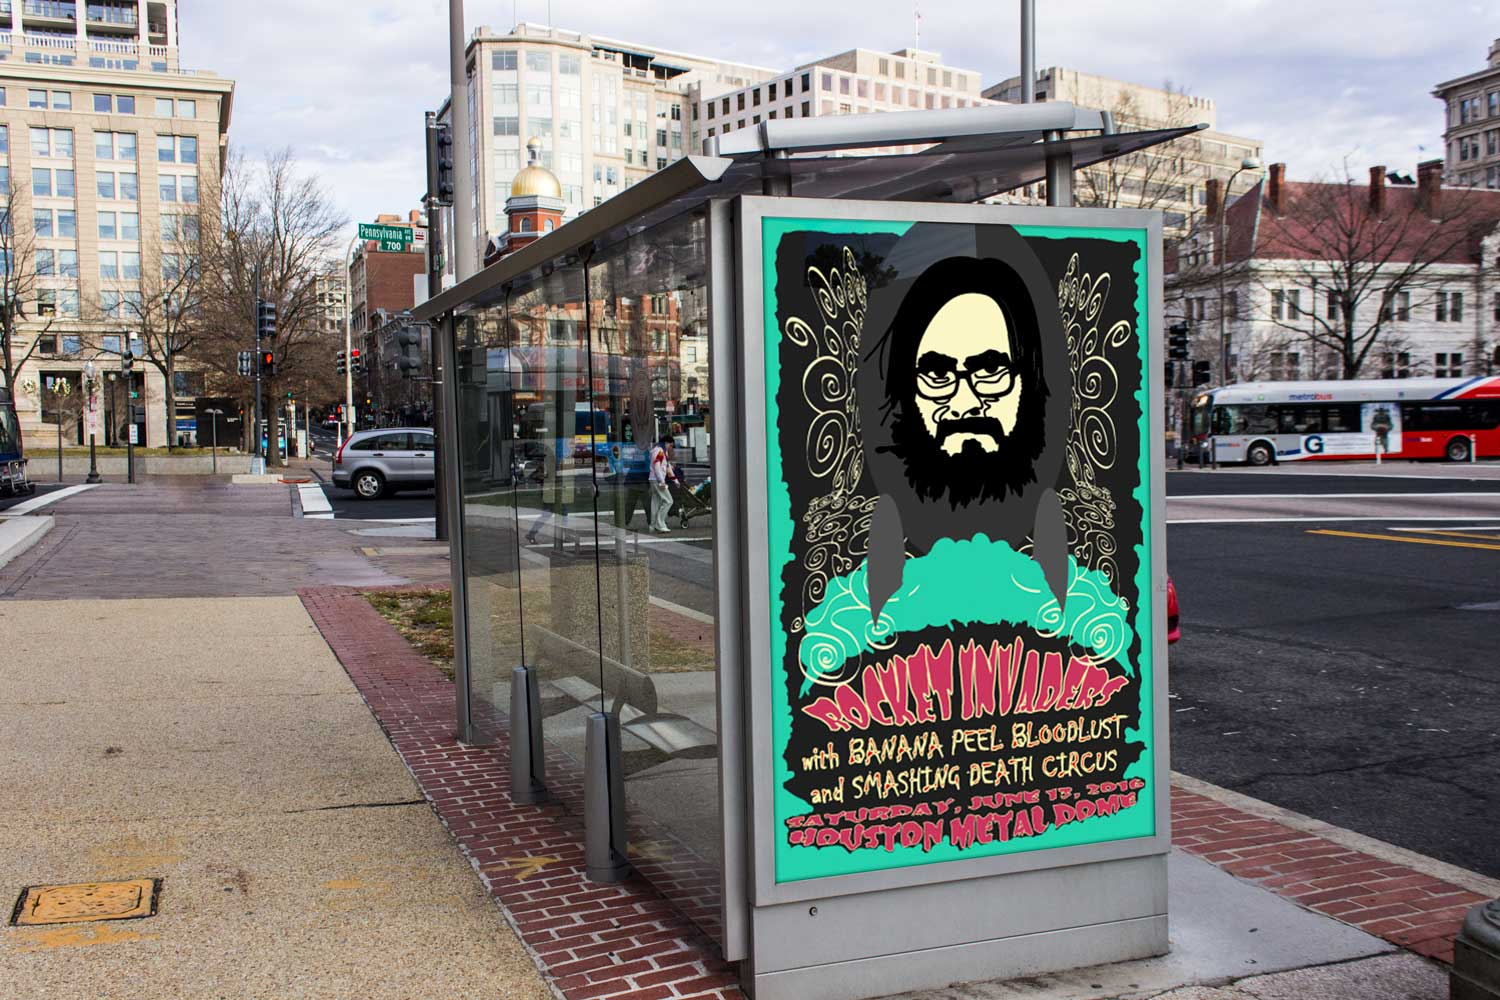 Rocket Invaders bus stop ad